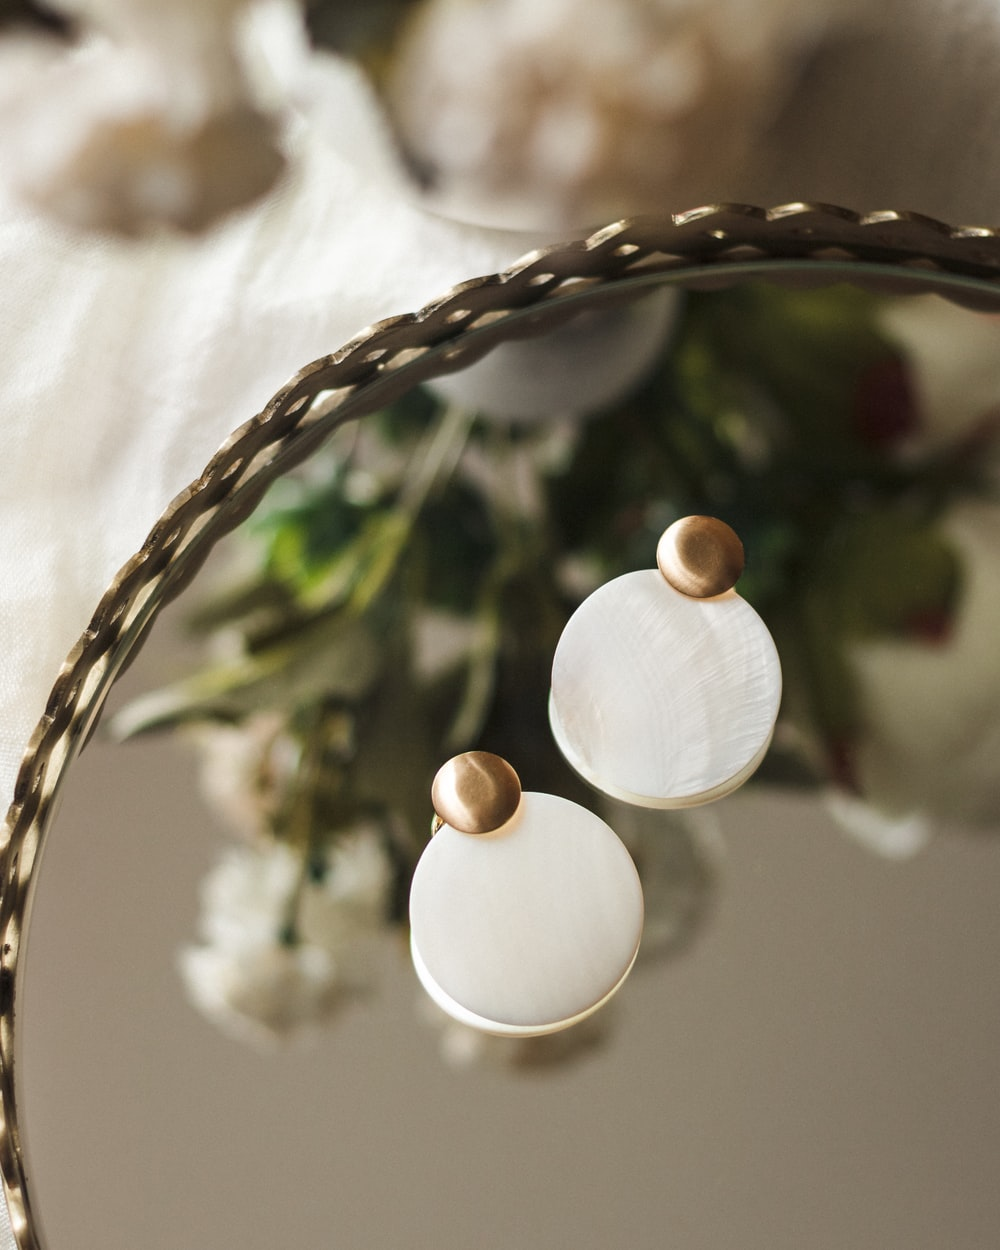 white round ornament on brown woven basket